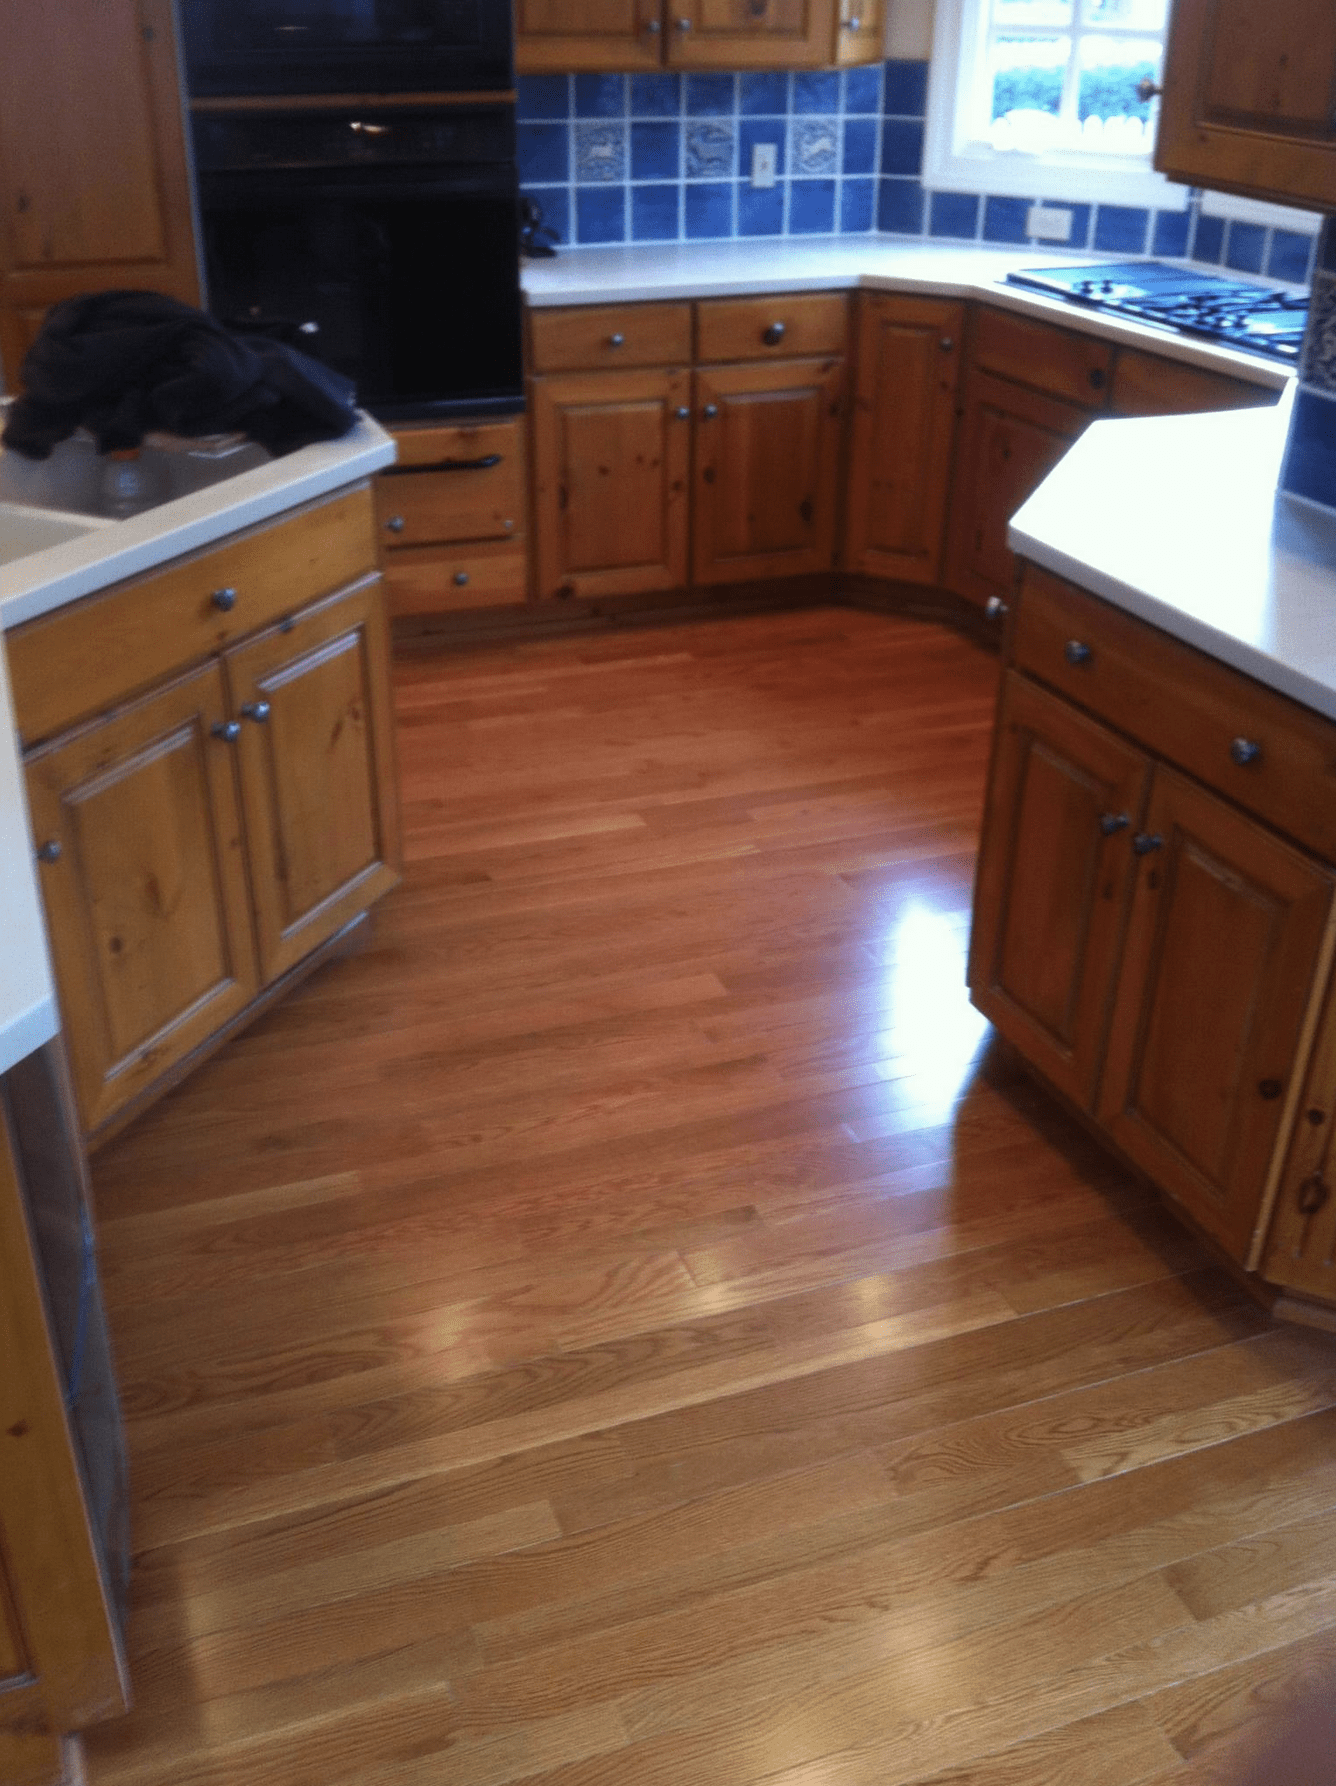 Kitchen hardwood flooring in Lyndon, KY from Unique Flooring Solutions